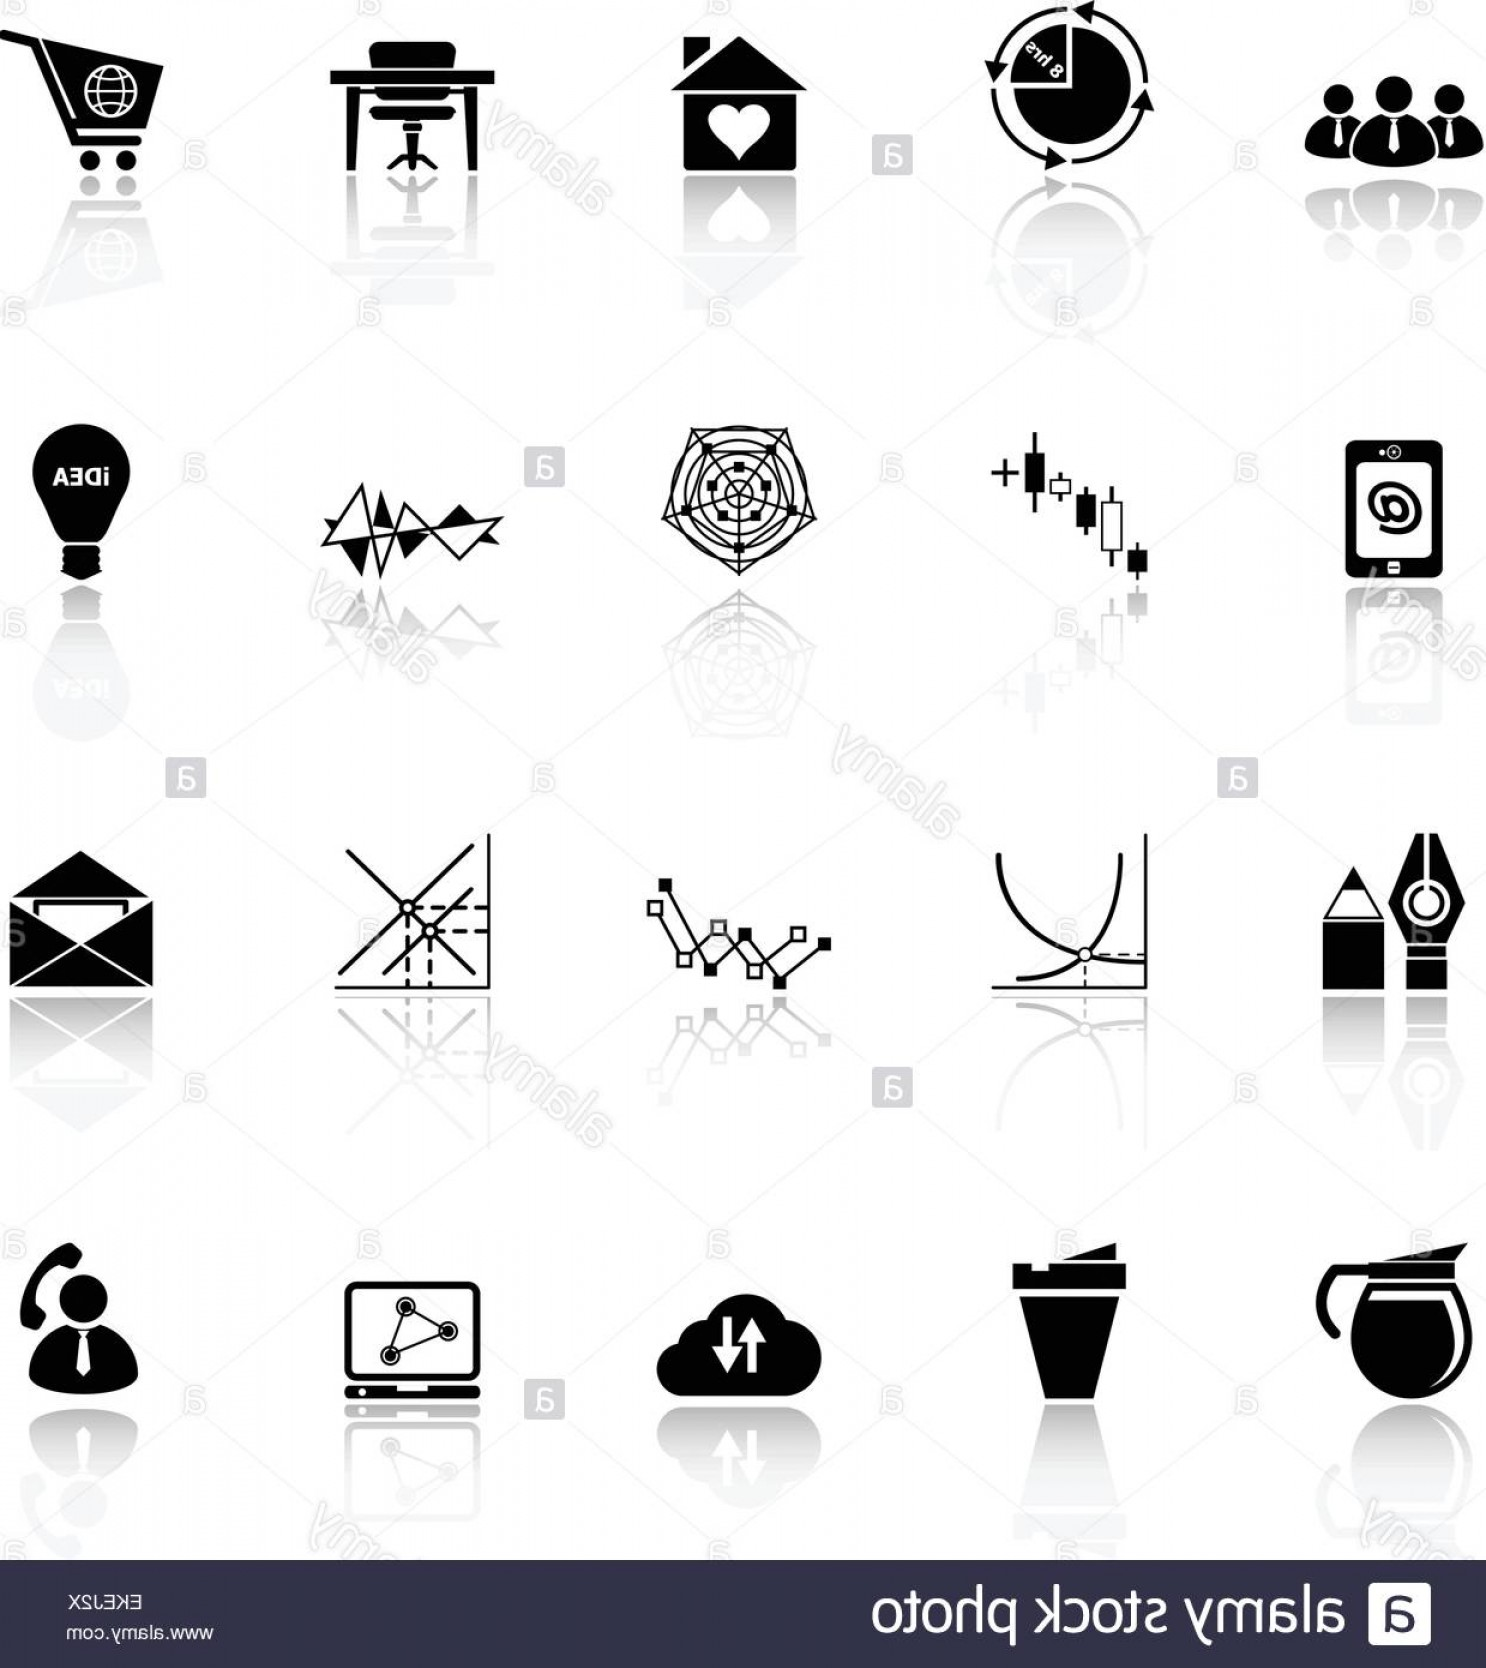 Vector Black And White Organization: Stock Photo Virtual Organization Icons With Reflect On White Background Stock